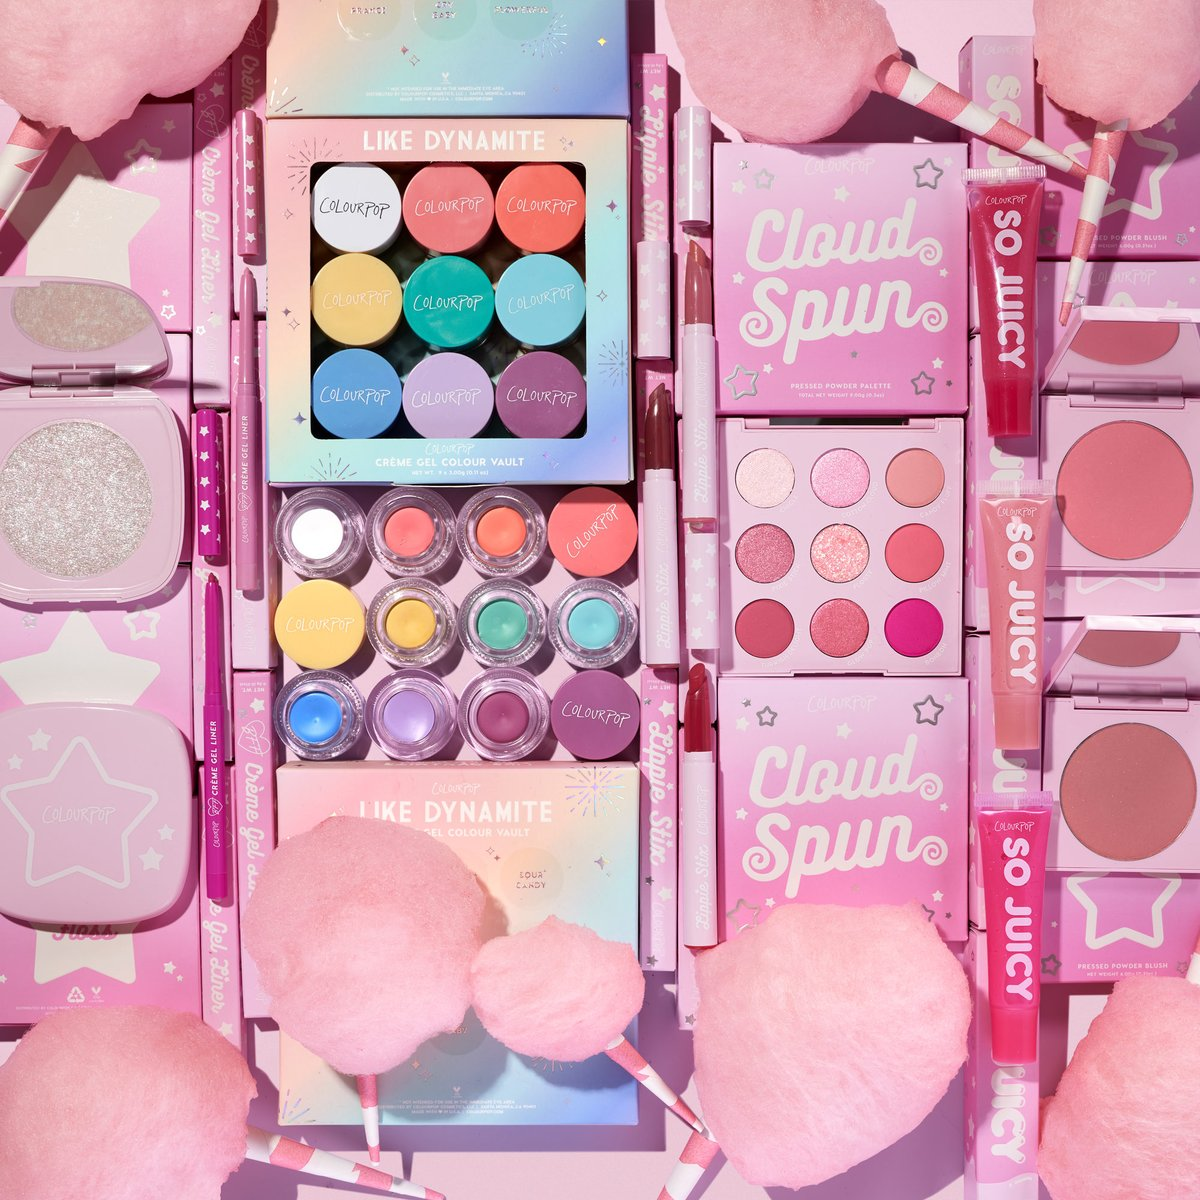 🍭Sweet Like Candy #GIVEAWAY 🍭  We will be giving away the Cotton Candy Collection + the Like Dynamite Creme Gel Vault to 5 lucky people! Check out our IG, FB, TikTok for another chance to win!   To enter: 🍭Like & RT 🍭follow @ColourPopCo